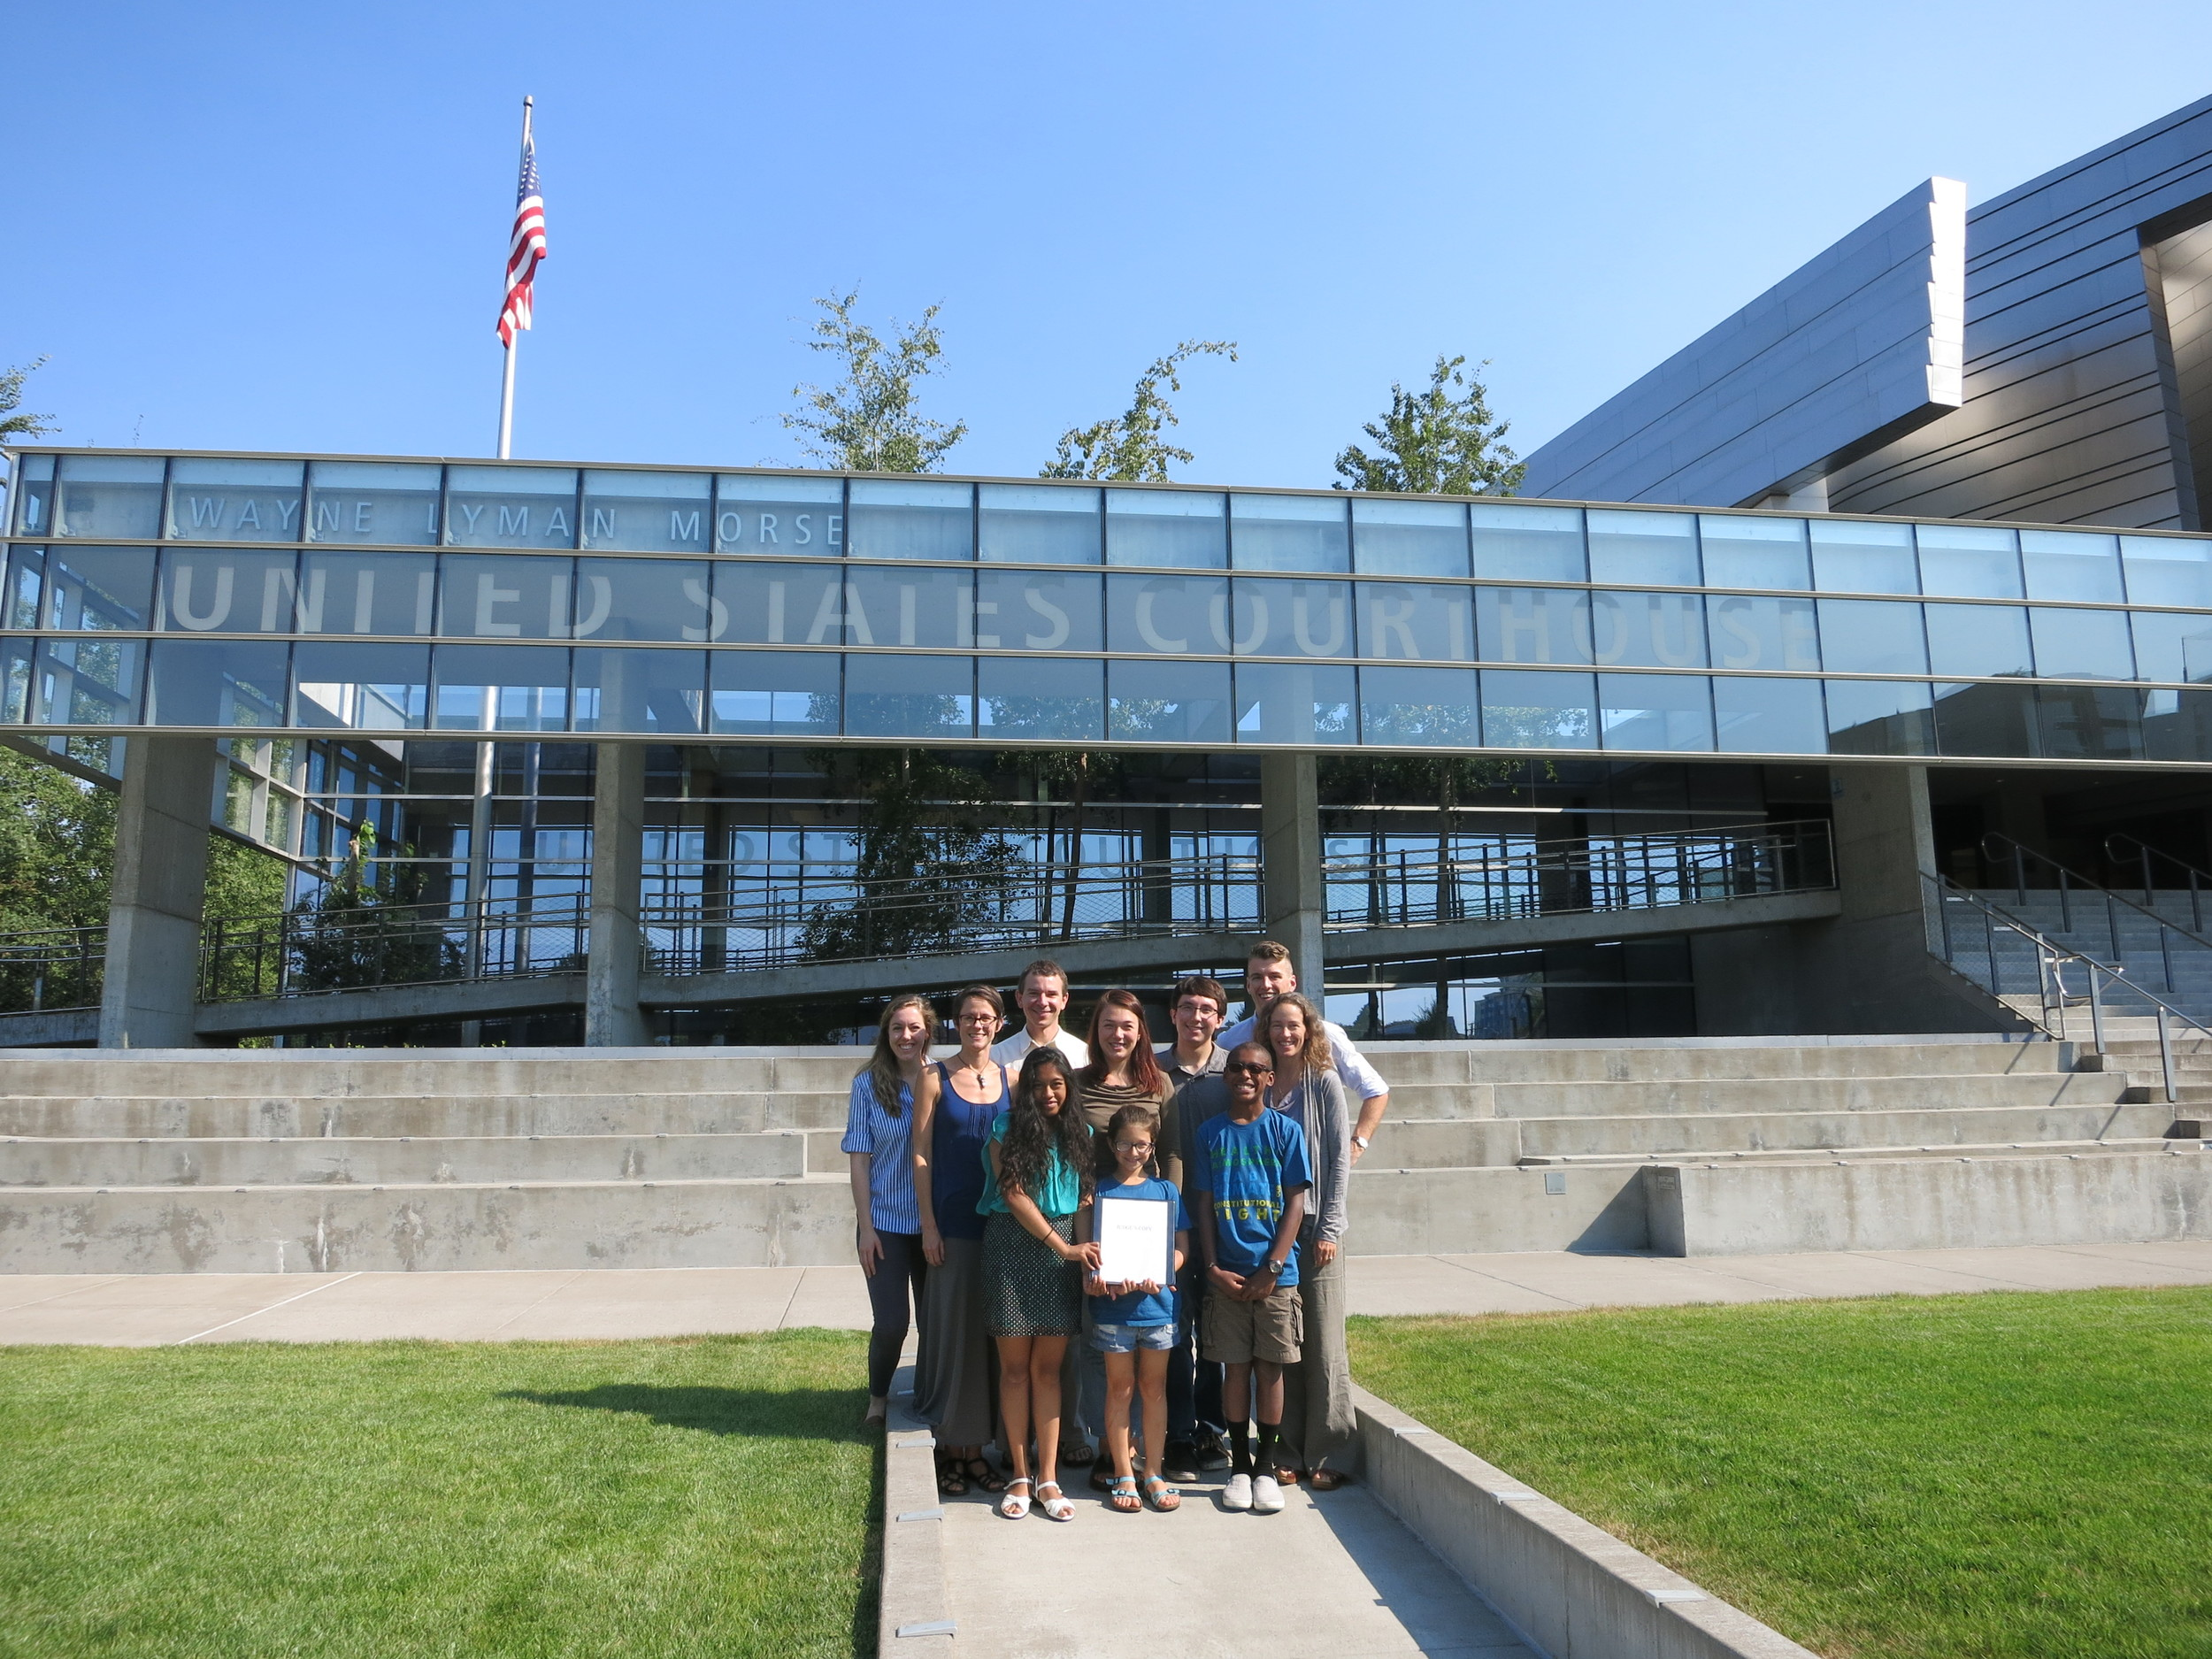 Some of the plaintiffs and OCT staff and law clerks outside the Wayne Morse United States Courthouse in Eugene, OR on August 12, just before submitting the federal complaint.